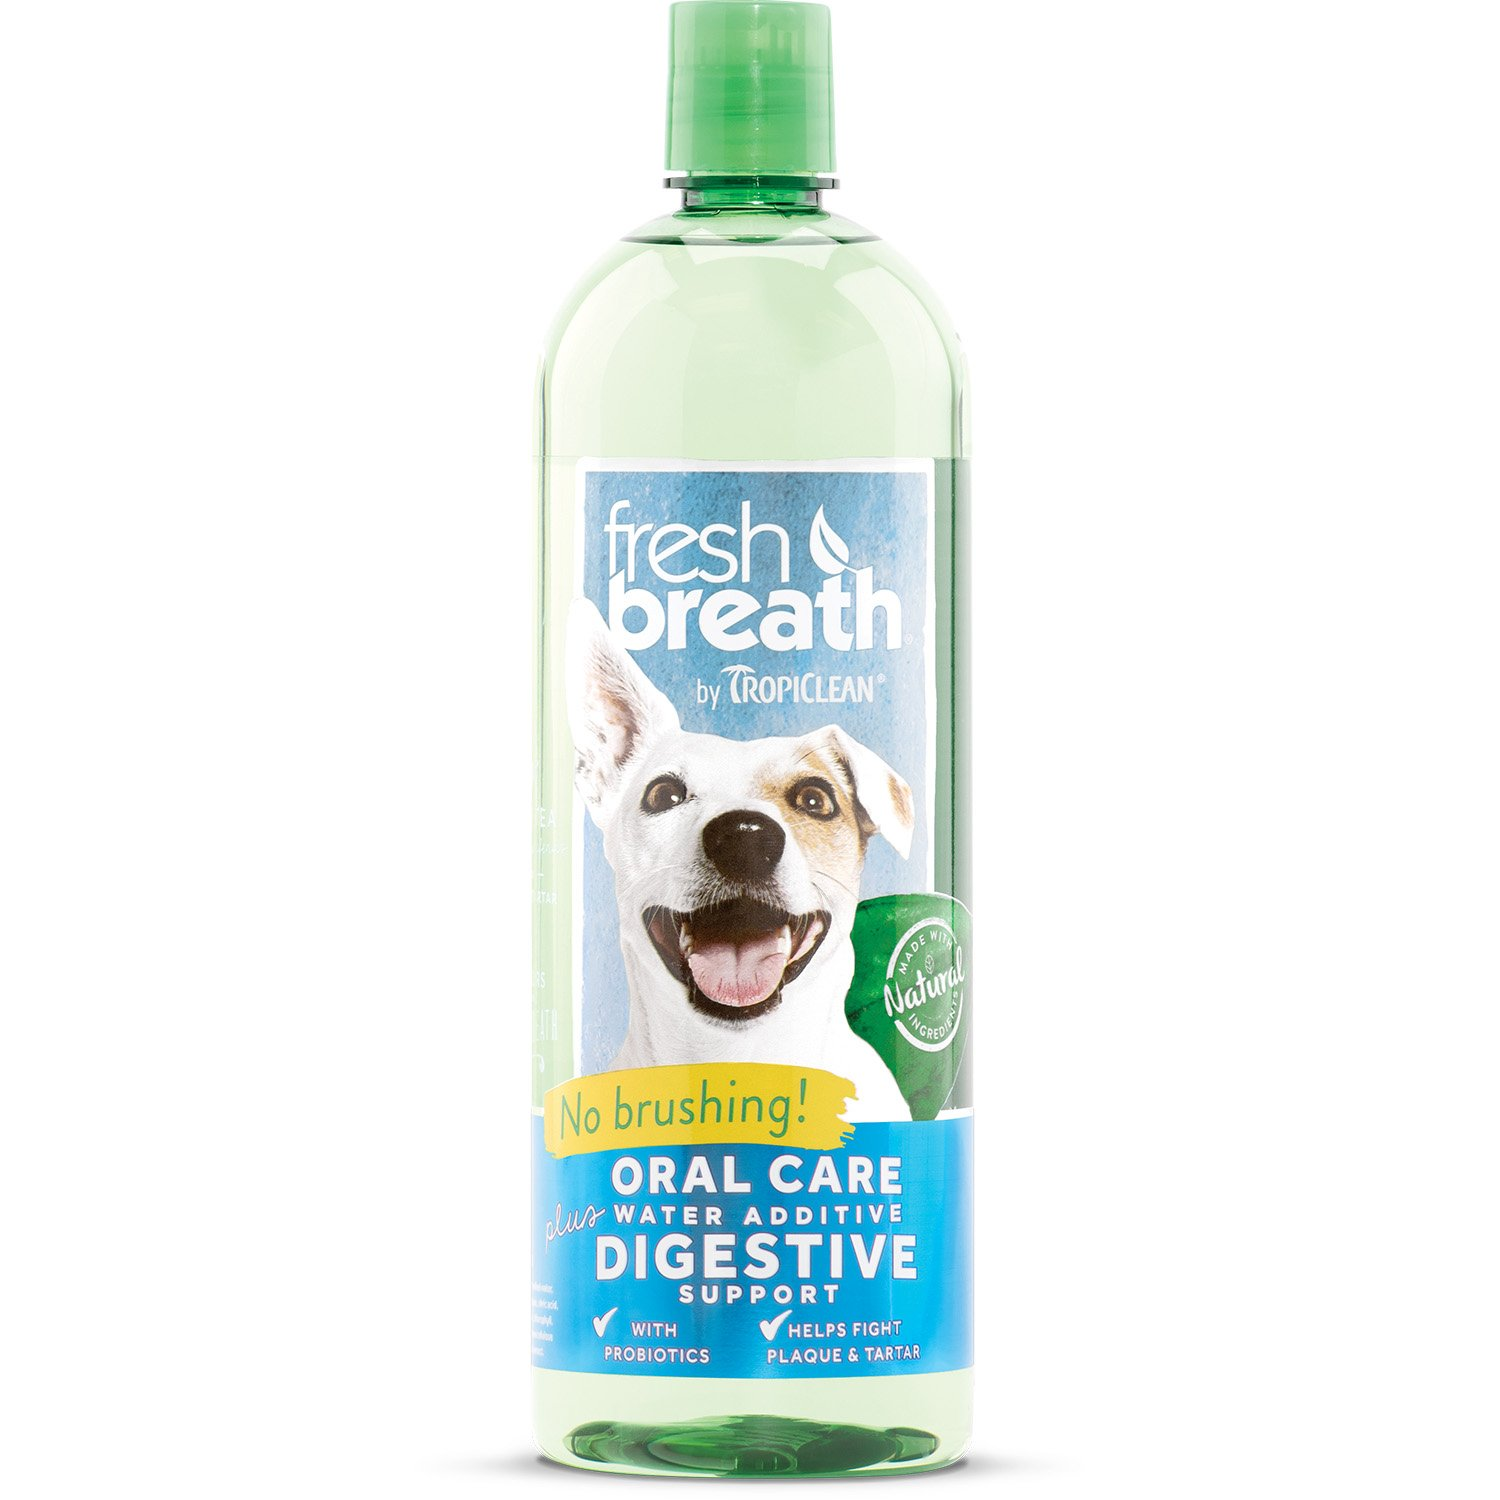 Tropiclean Fresh Breath Oral Care Water Additive Plus Digestive Support, 33.8oz